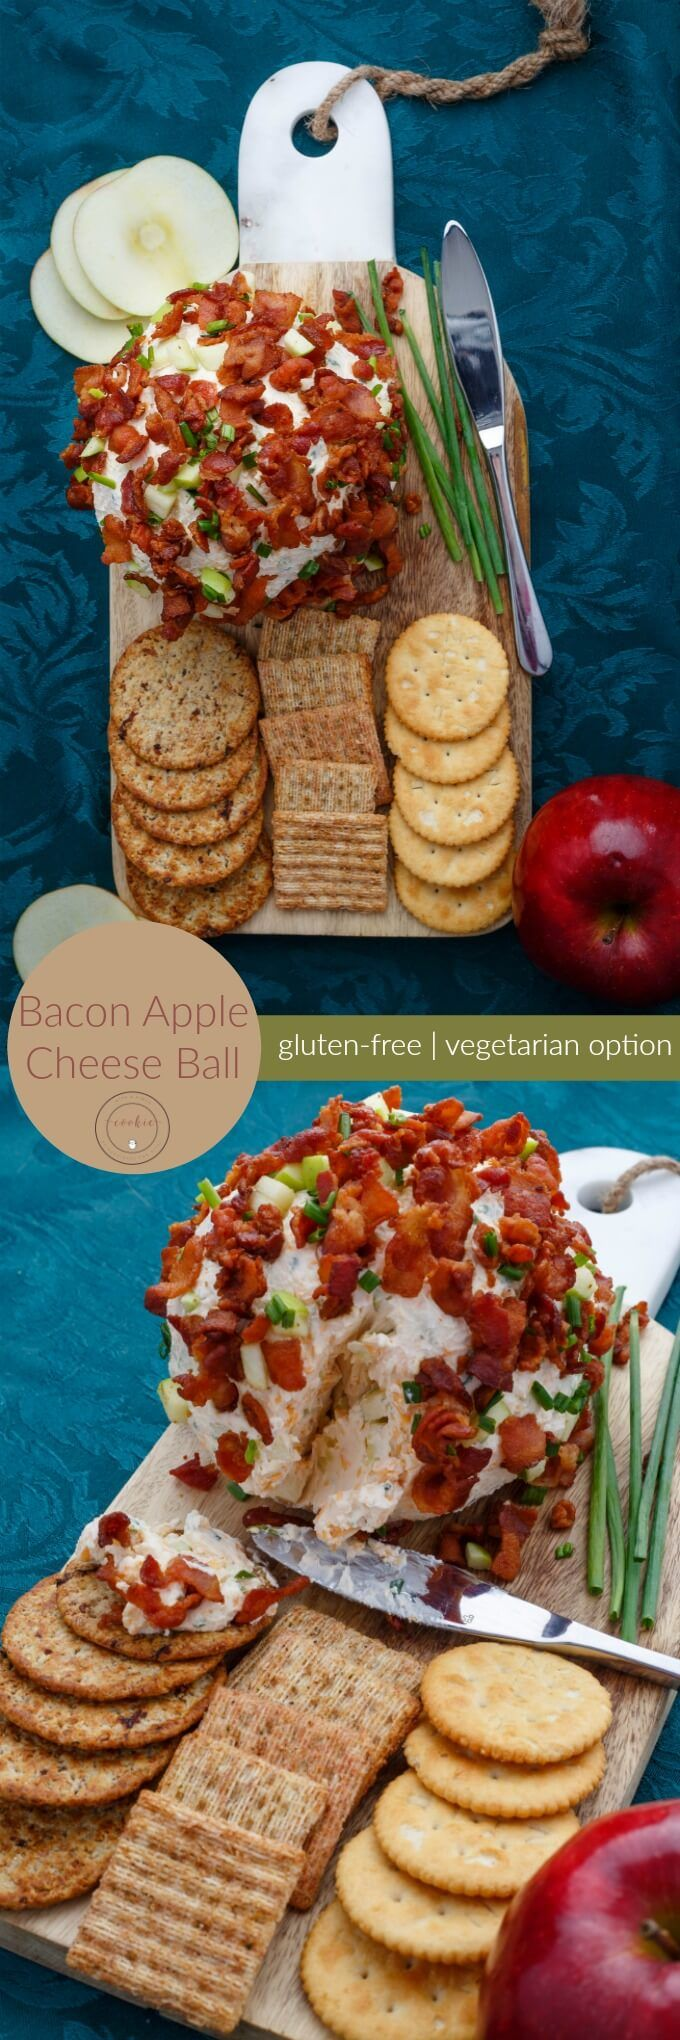 Bacon Apple Cheese Ball | http://thecookiewriter.com | @thecookiewriter | #appetizer #sponsored | This gluten-free holiday appetizer is perfect for any part, and it can also be made vegetarian by subbing in caramelized onions!